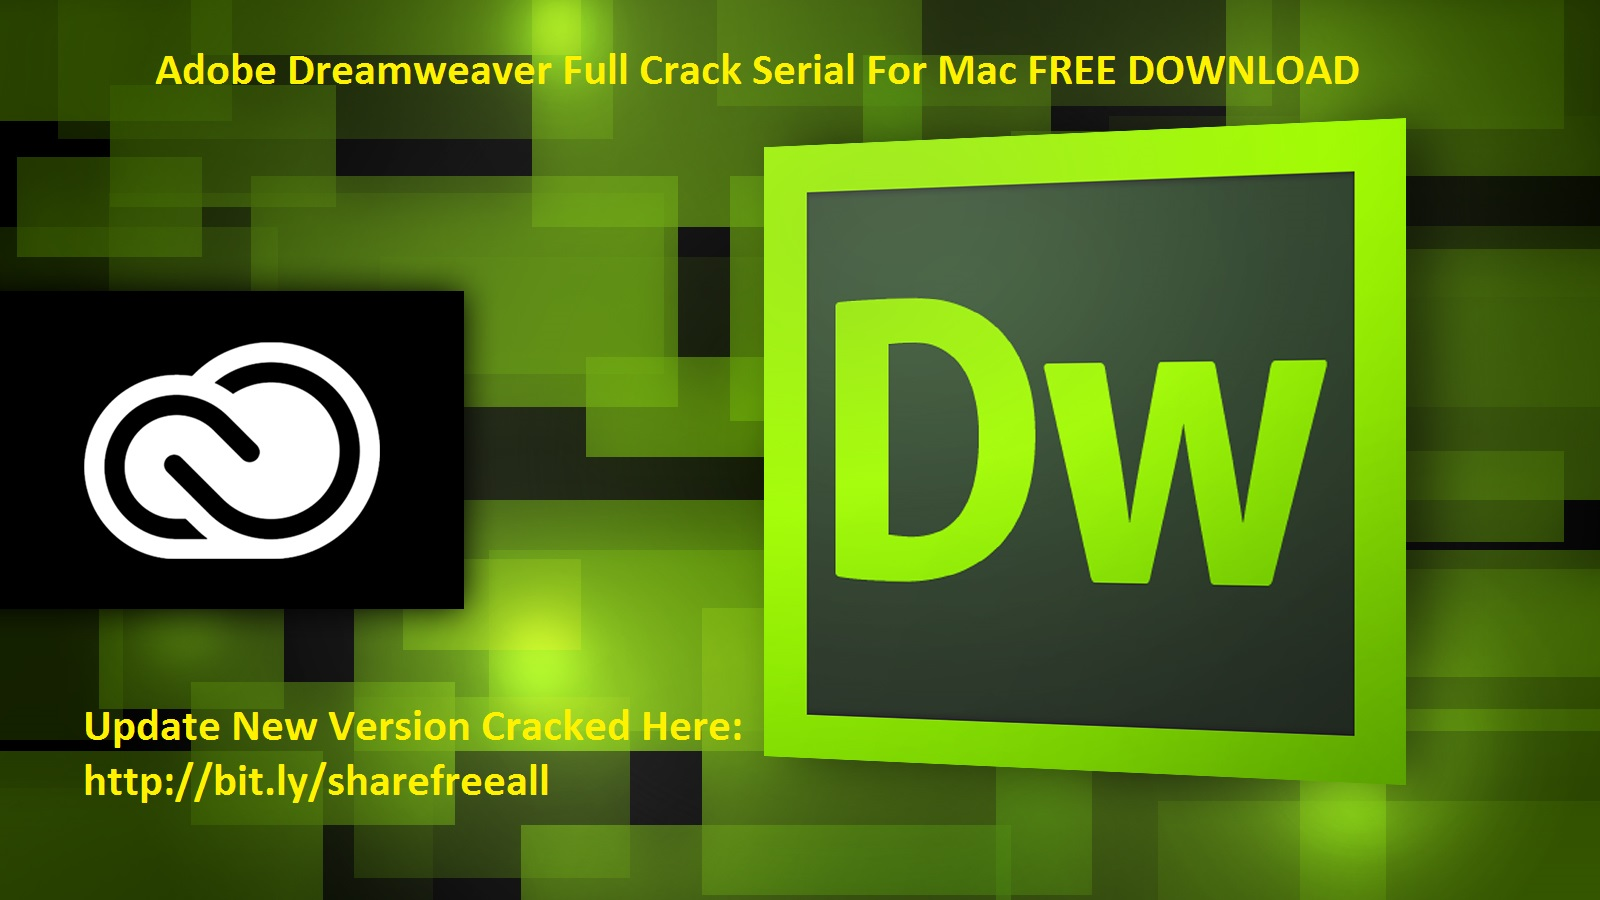 Adobe Dreamweaver CC 2017 v17.5 Serial For Mac OS X Free Download